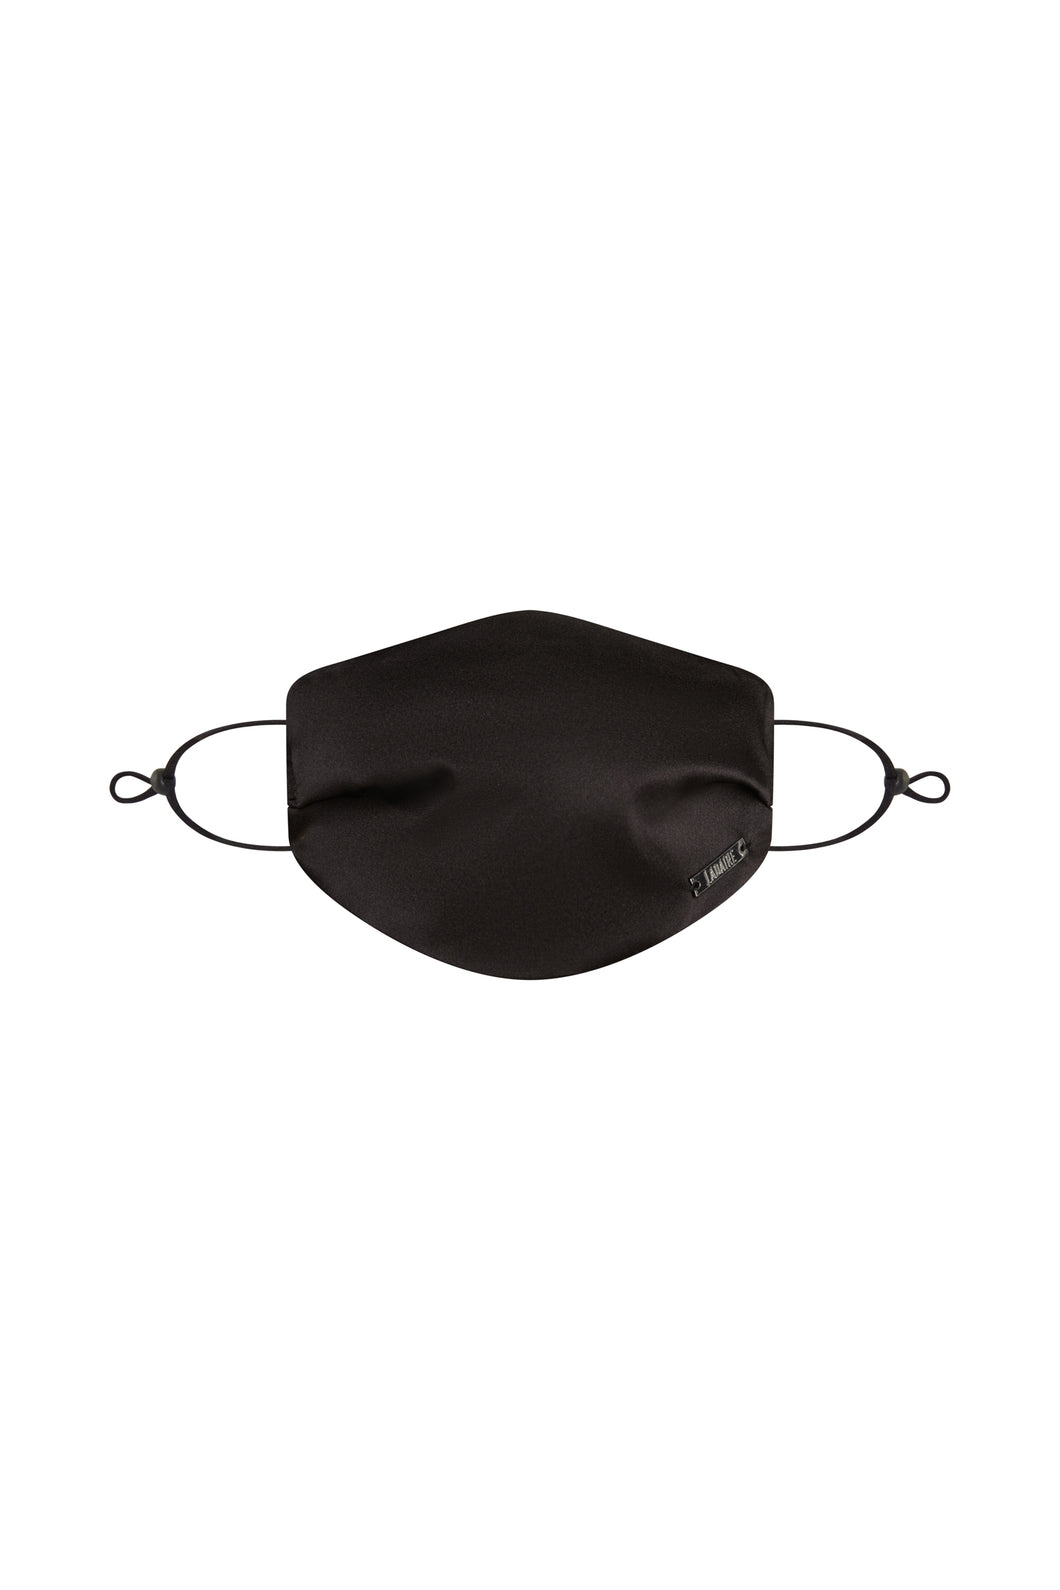 Small Black Silk Face Mask with Filter Pocket and Adjustable Straps